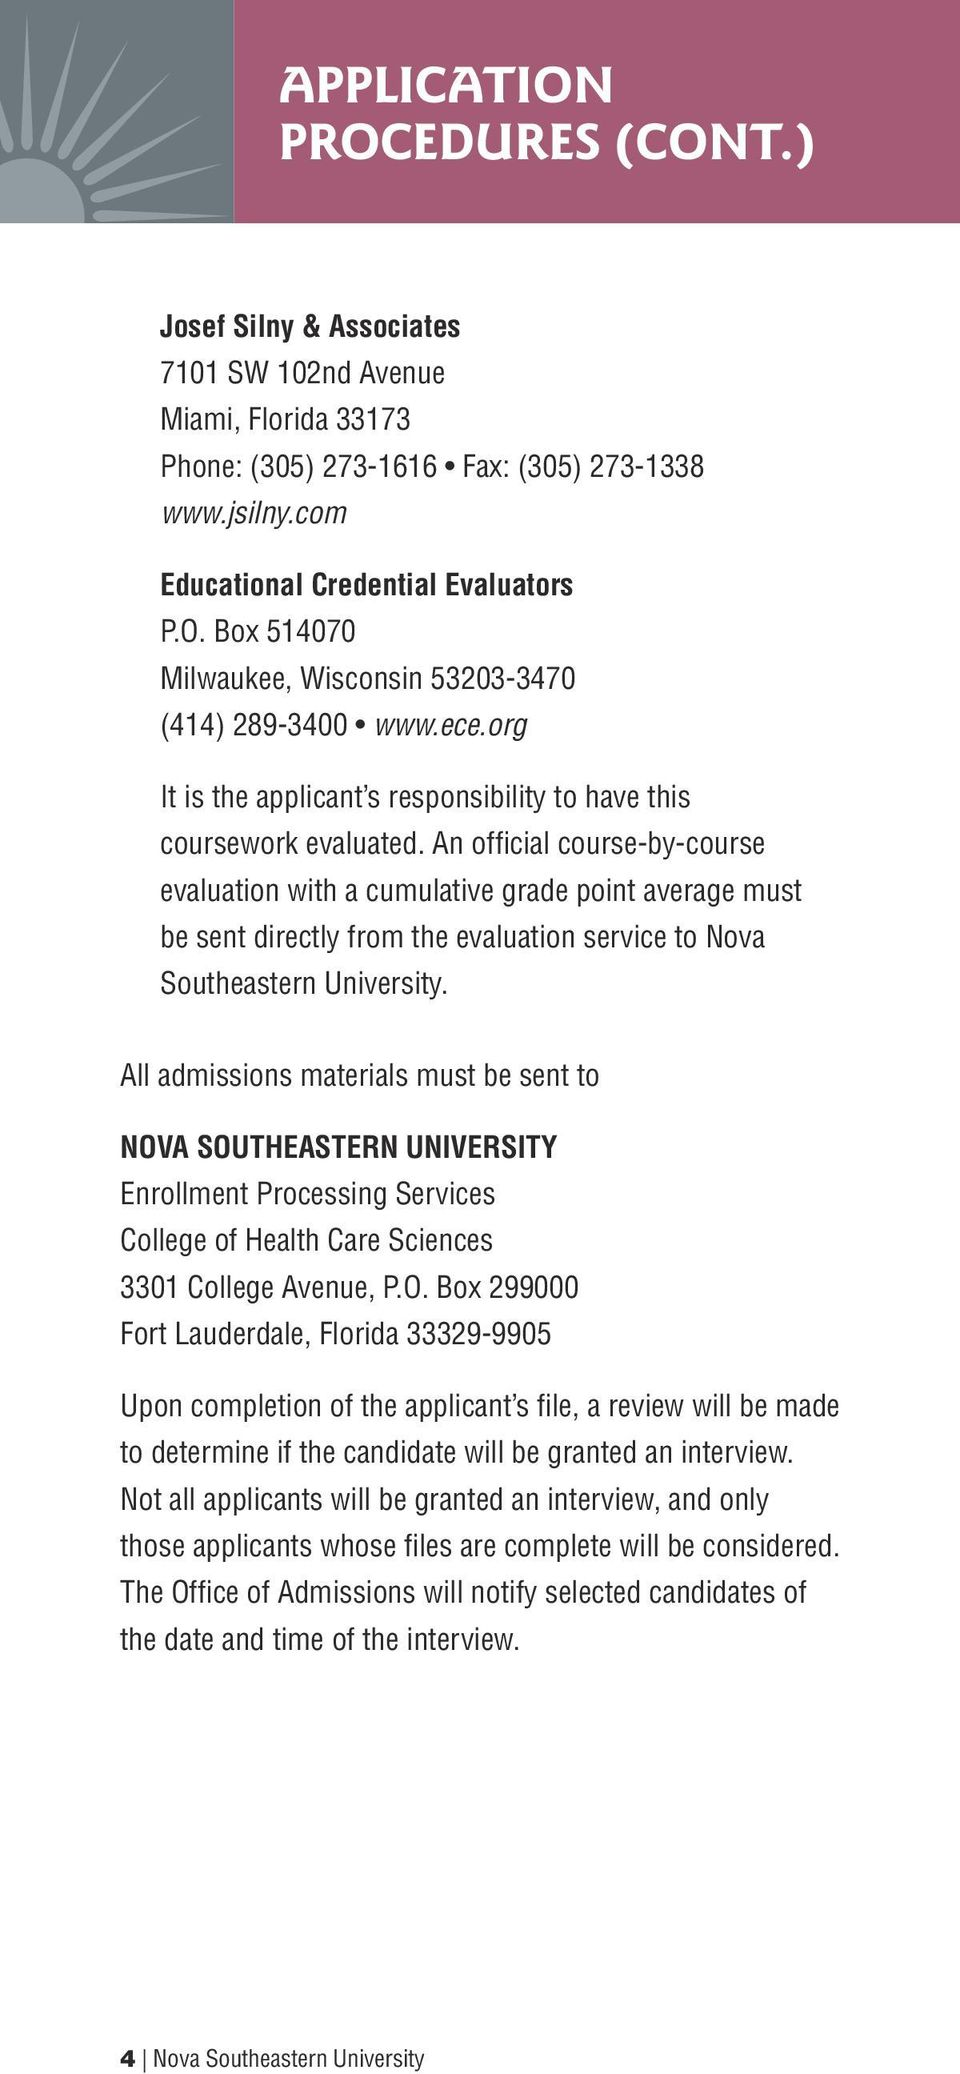 An official course-by-course evaluation with a cumulative grade point average must be sent directly from the evaluation service to Nova Southeastern University.